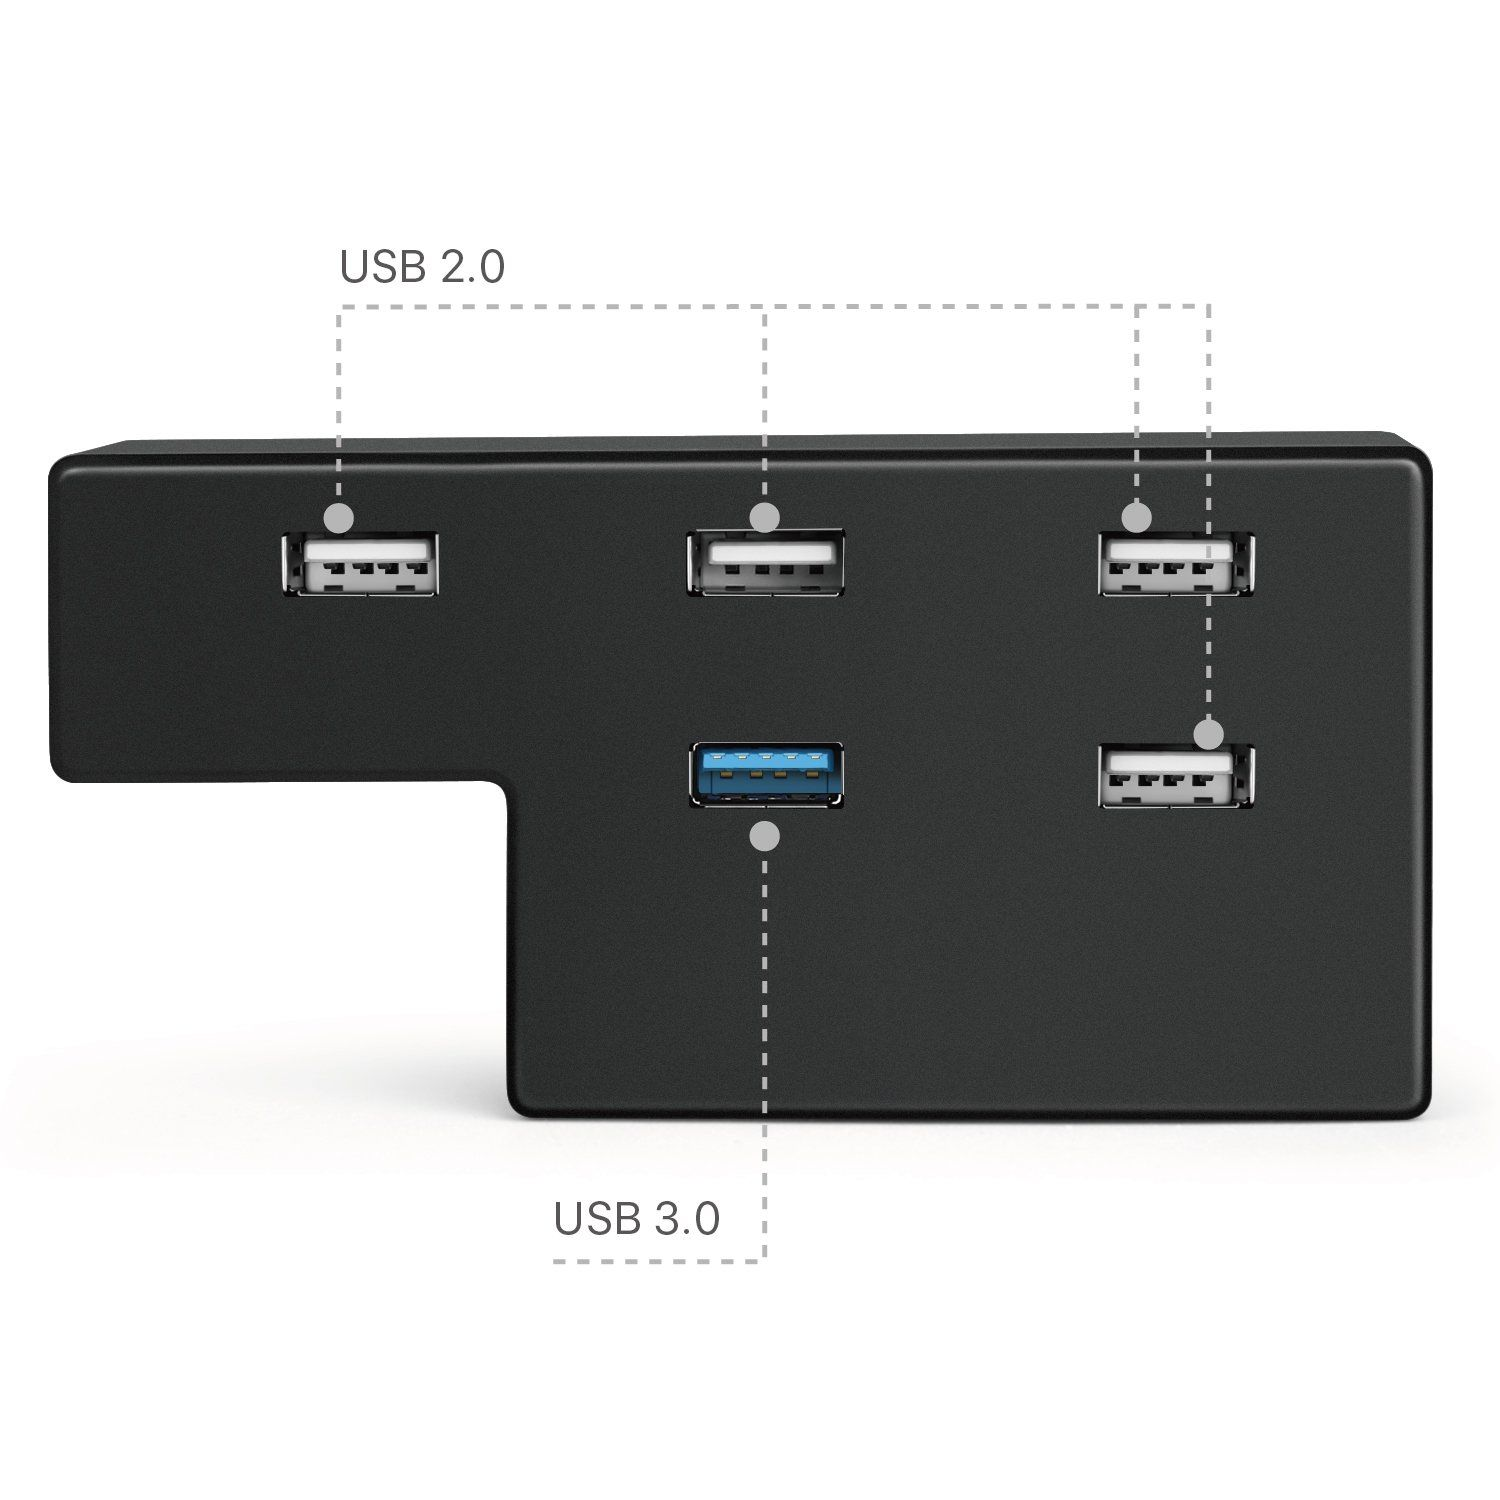 Tnp 5 Port Usb Hub For Ps4 Pro Edition Usb 3 0 2 0 High Speed Adapter Accessories Expansion Hub Connector Splitter Expander For P Ps4 Pro Ps4 Pro Console Usb